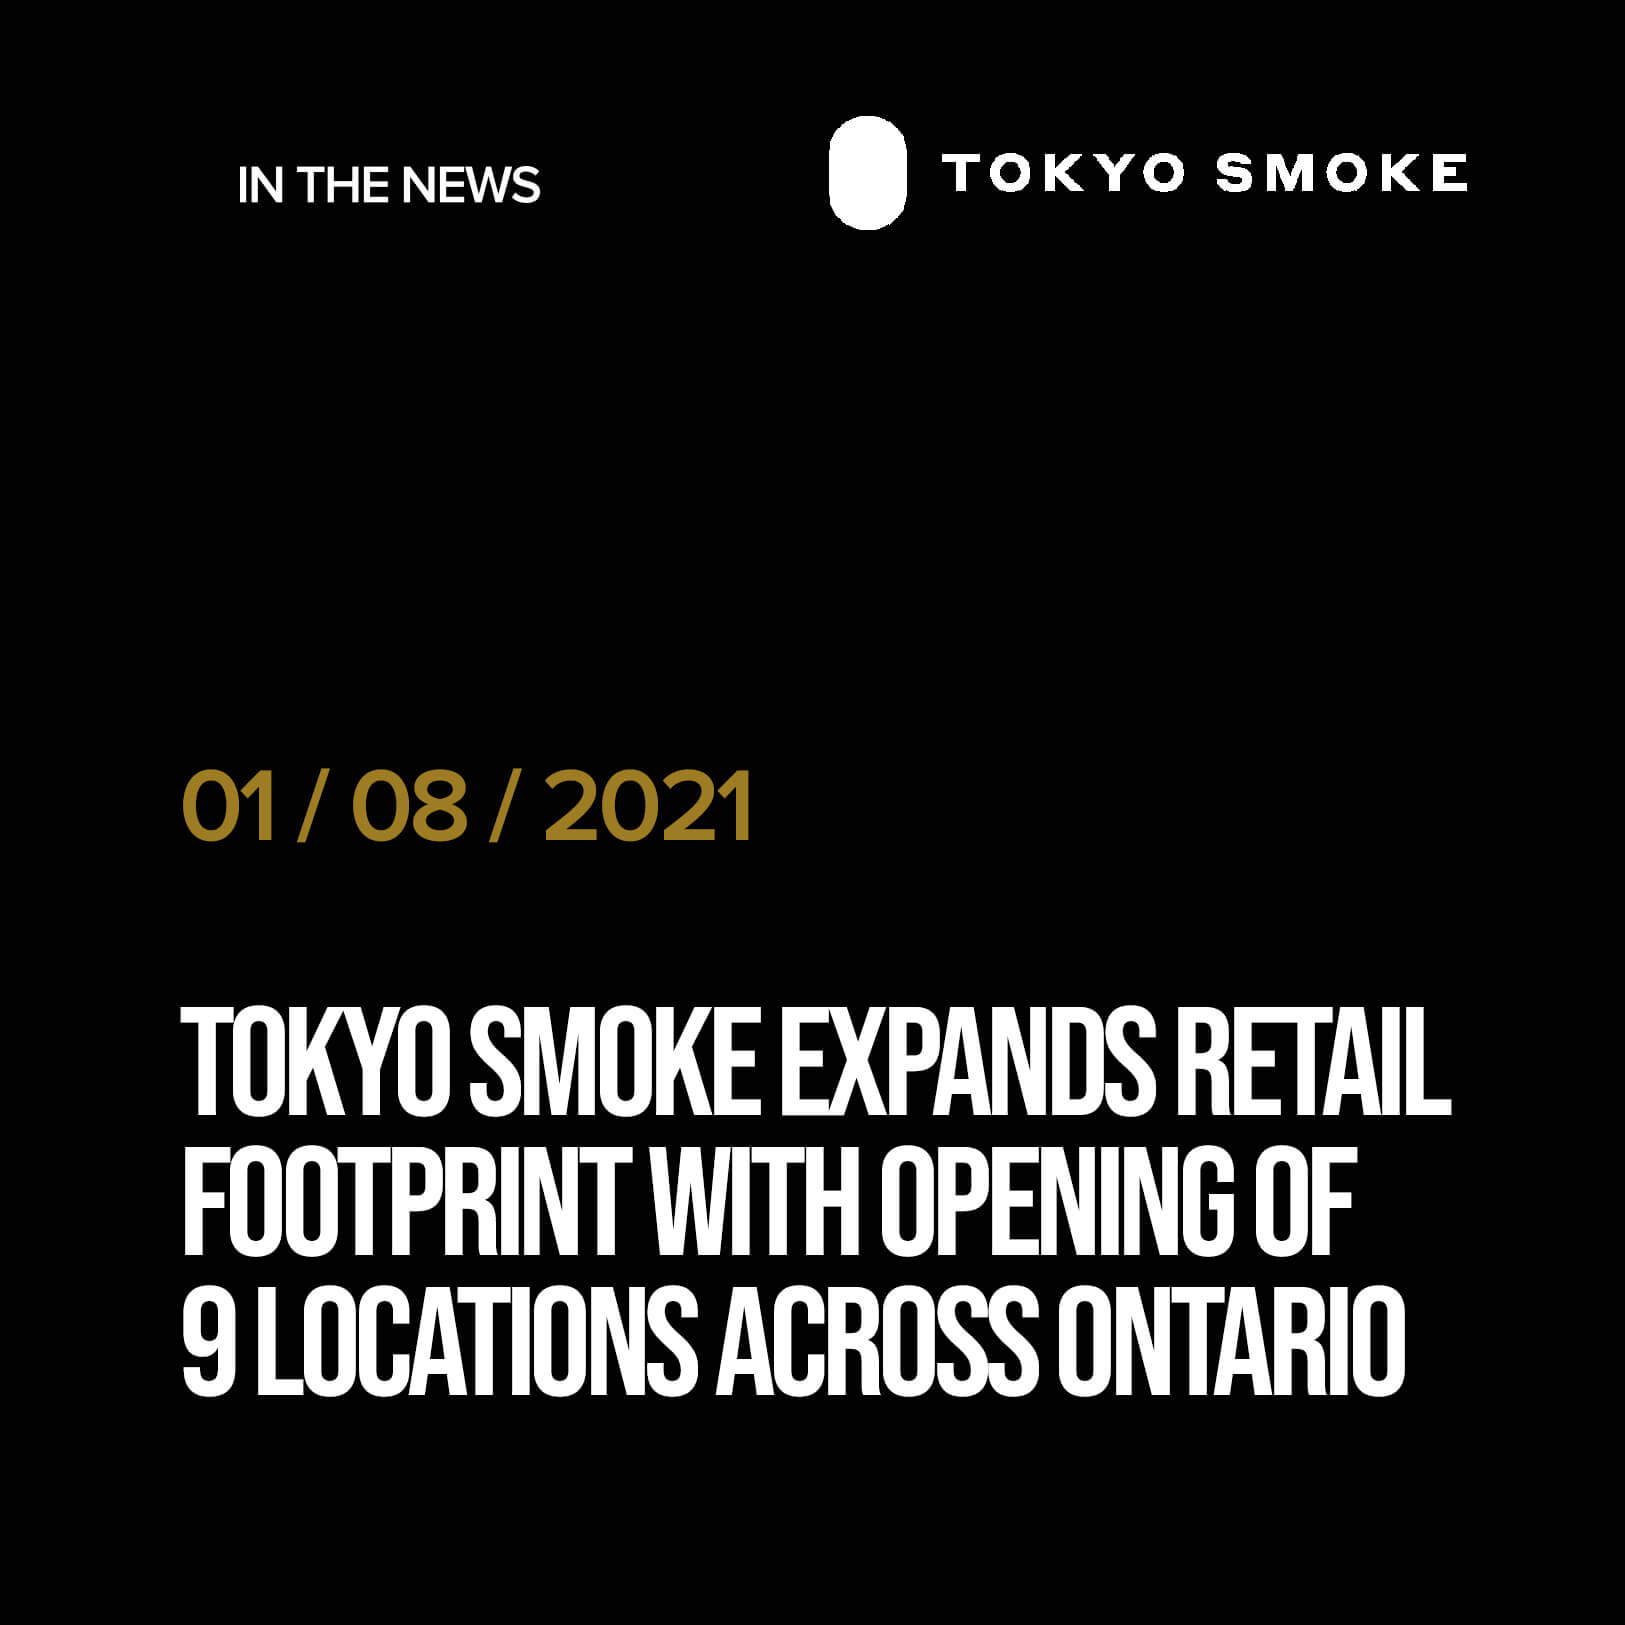 TOKYO Smoke Expands RETAIL FOOTPRINT WITH OPENING Of 9 LOCATIONS Across ONTARIO